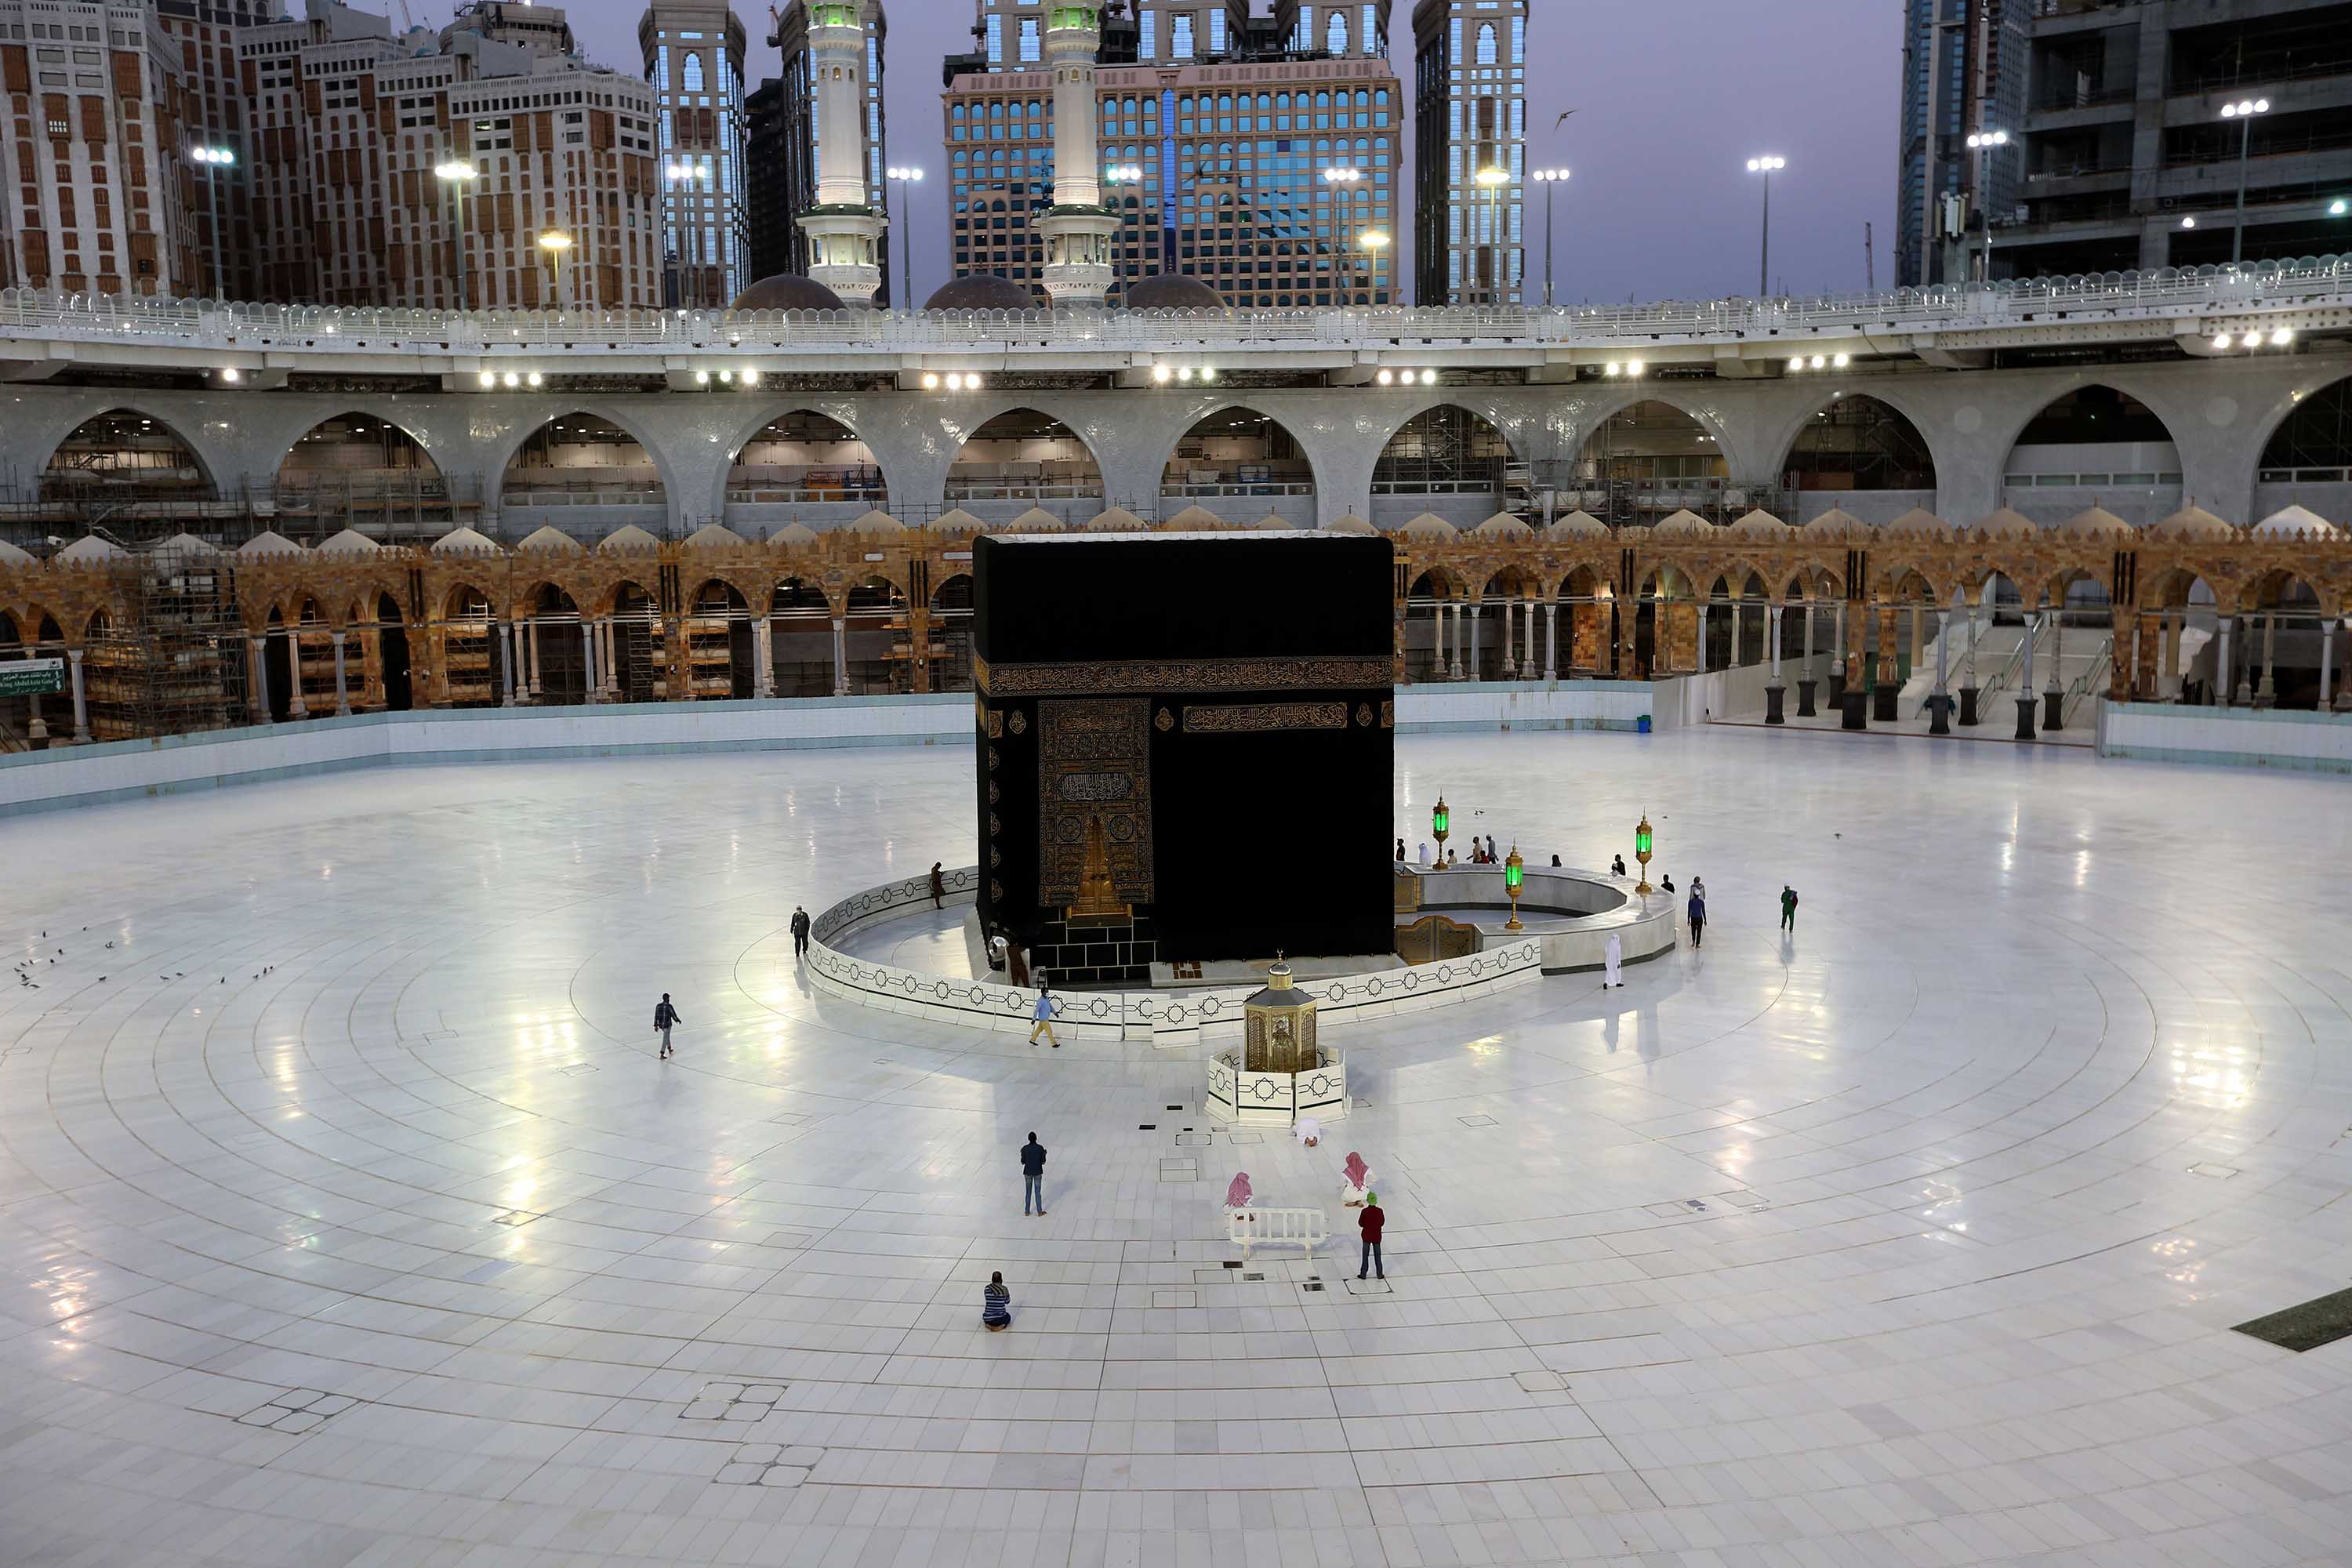 A handful of worshippers are seen praying at the Ka'aba, Islam's holiest shrine, at the Grand Mosque complex in Mecca, Saudi Arabia, on June 23.